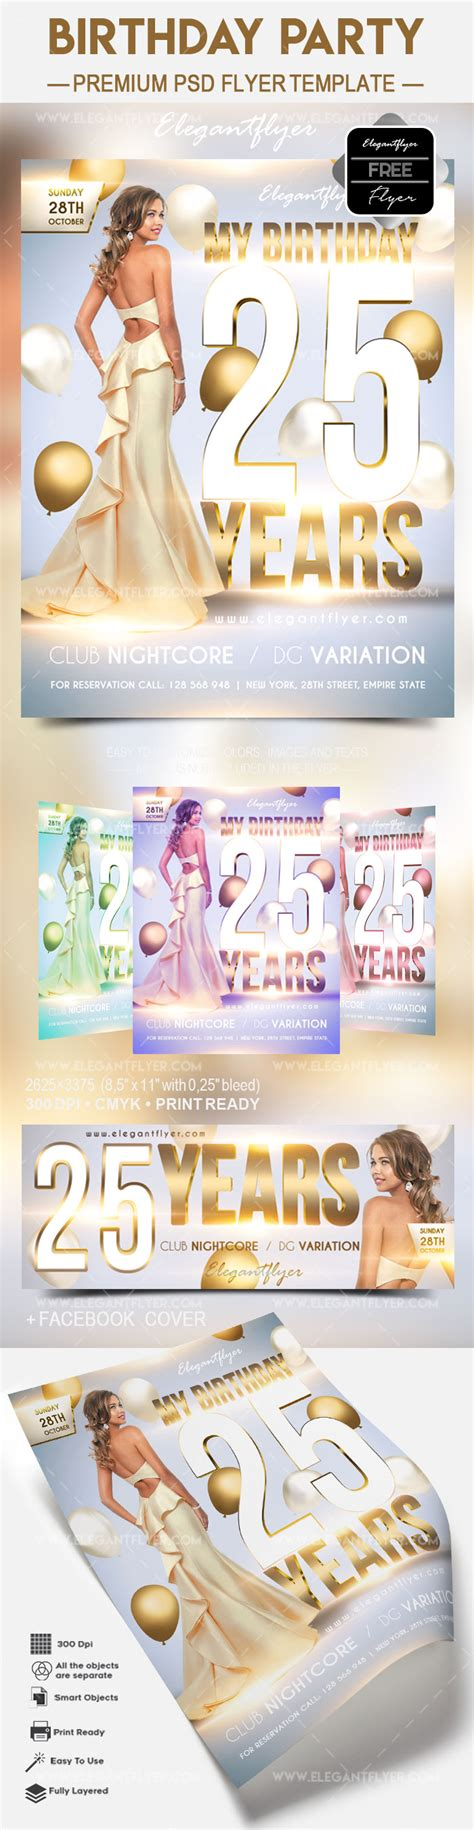 Free Birthday Party 2017 Flyer Psd Template Facebook Cover By Elegantflyer Free Birthday Flyer Templates